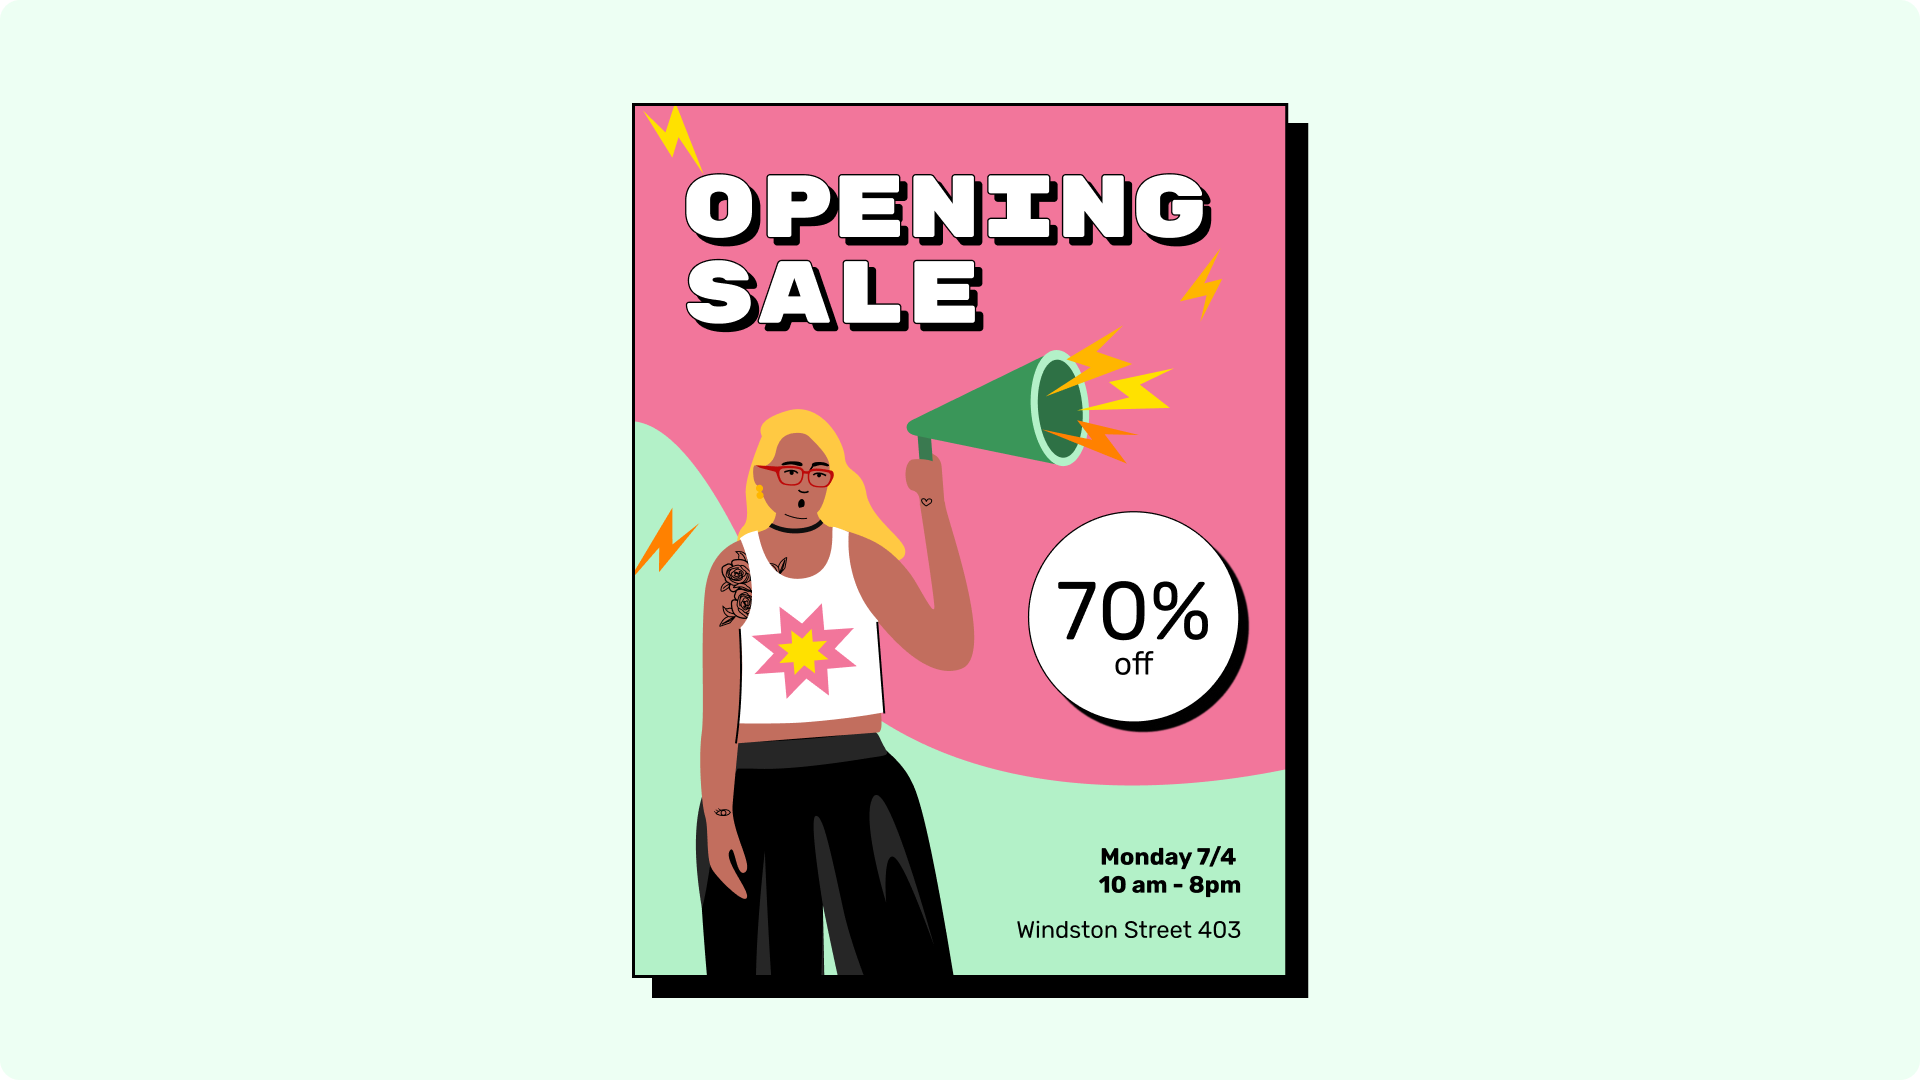 Opening sale flyer example.